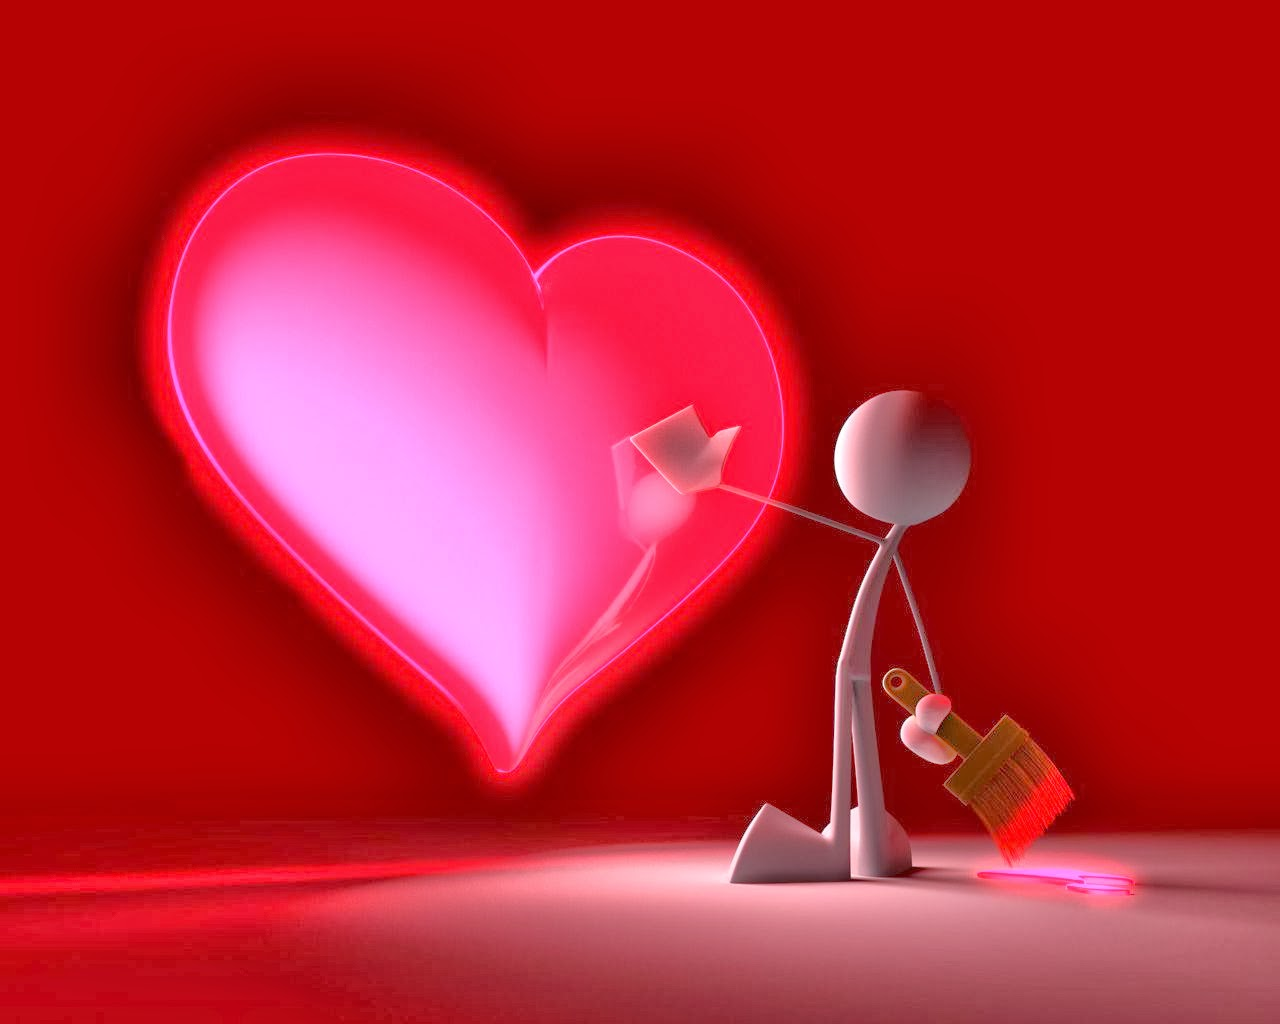 Beautiful Love Wallpapers for Mobile - WallpaperSafari